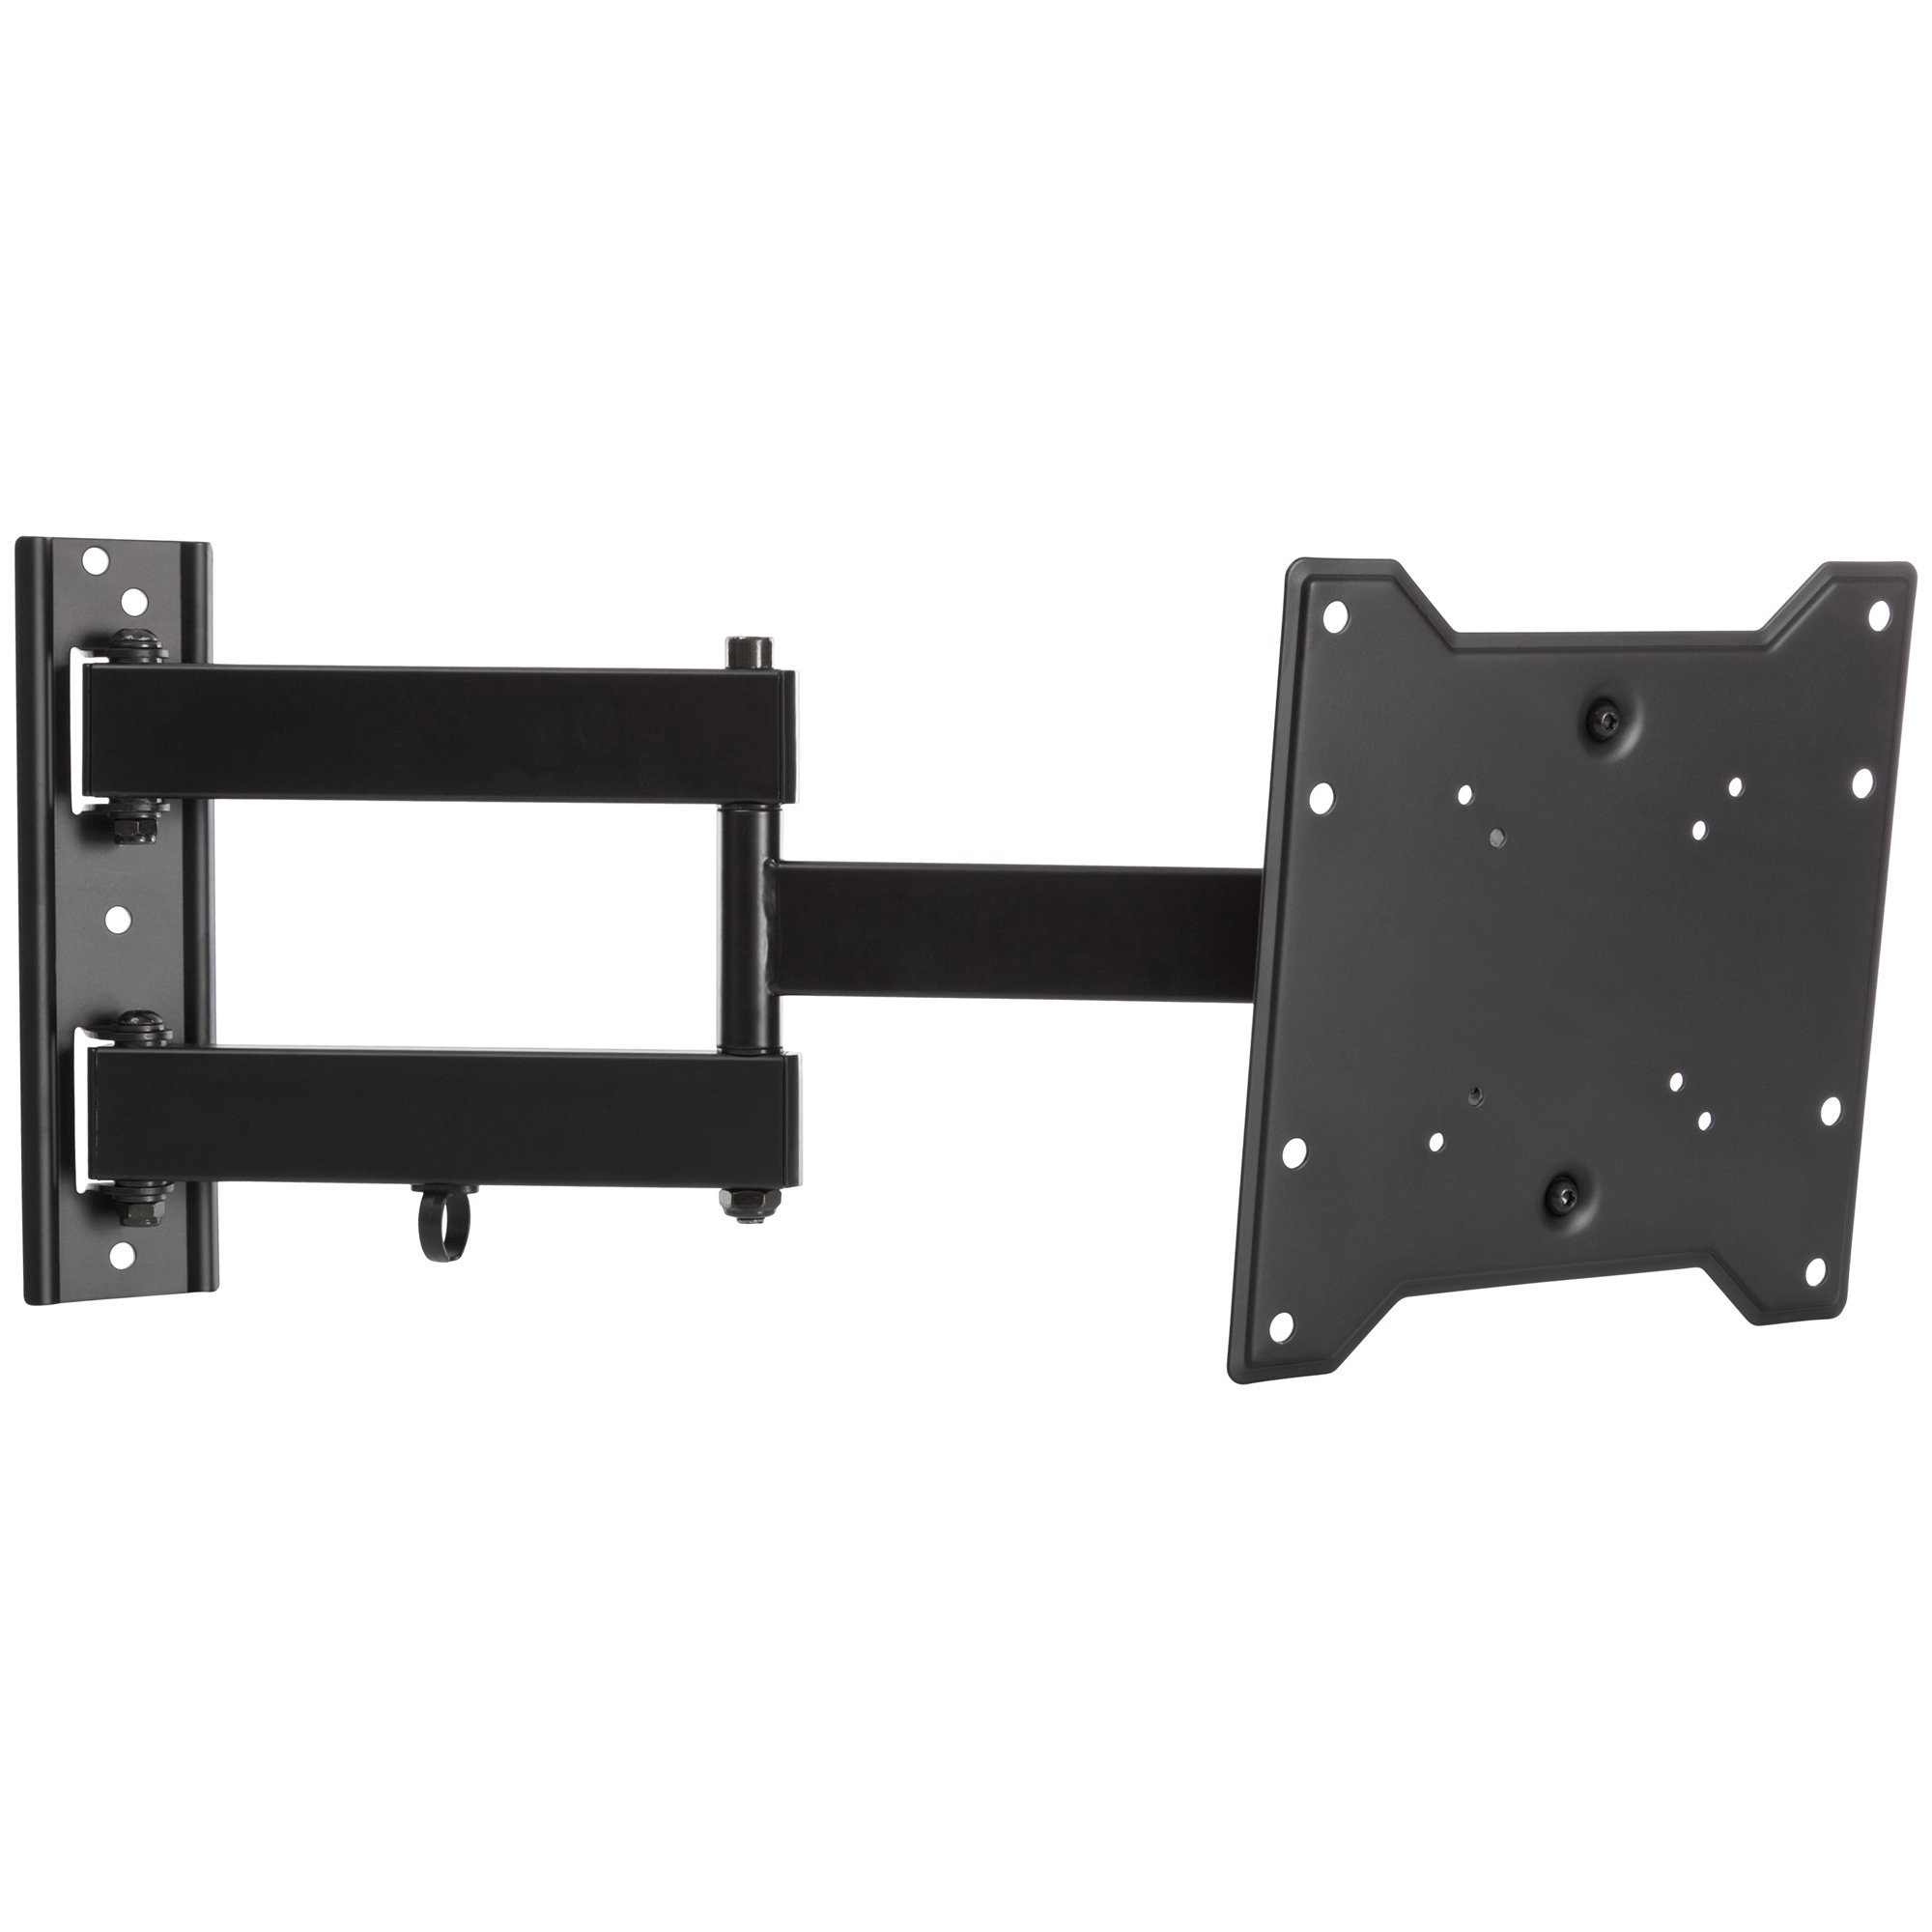 proper tilt heavy duty swing arm wall tv bracket for 23. Black Bedroom Furniture Sets. Home Design Ideas